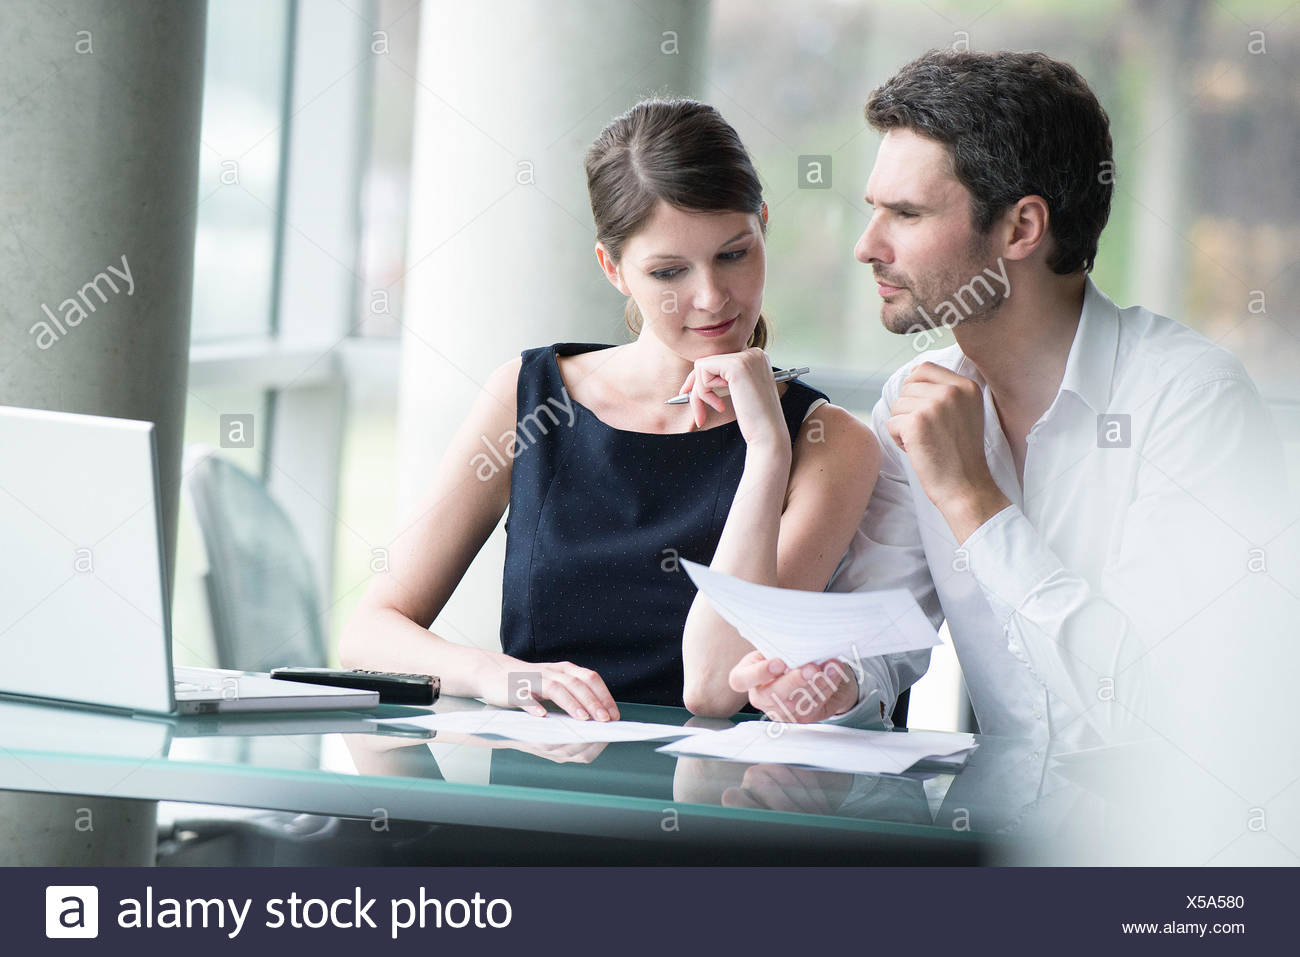 Business associates brainstorming - Stock Image